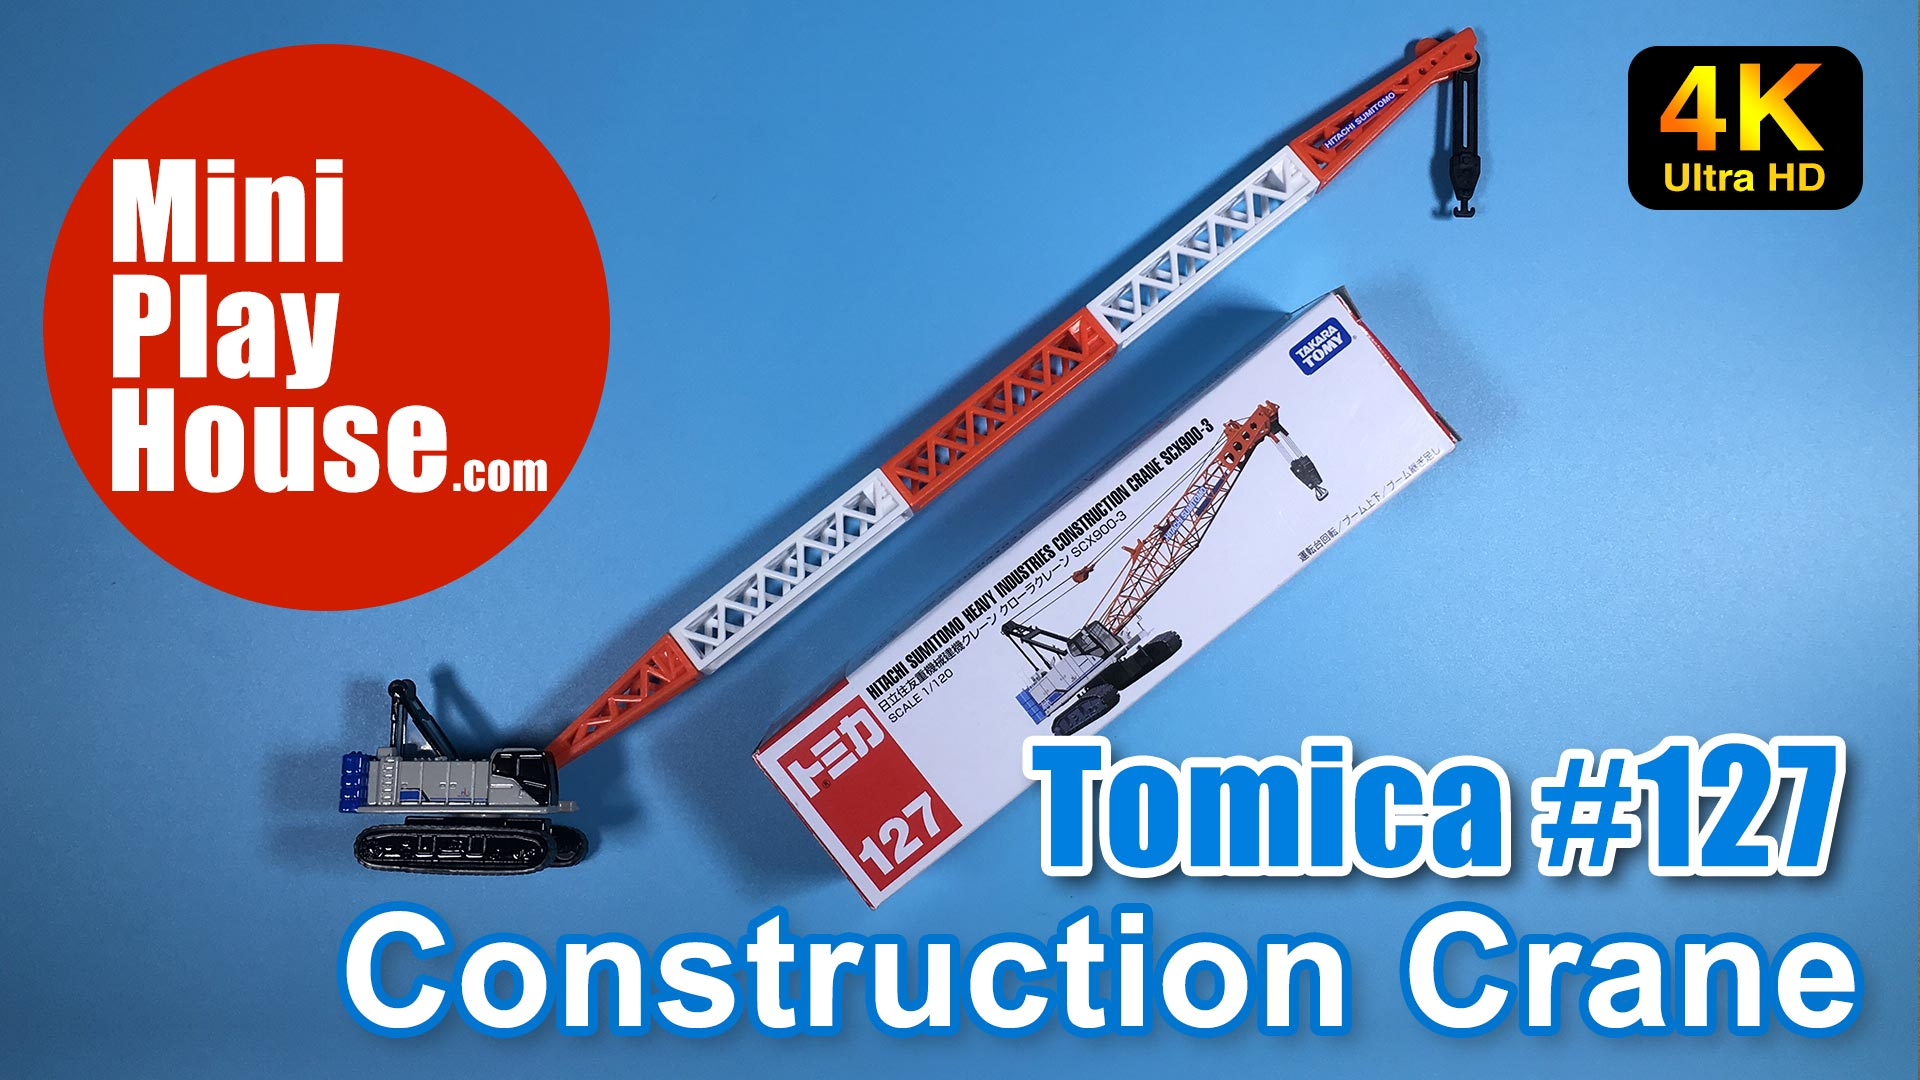 Tomica No.127 Hitachi Sumitomo Heavy Industries Construction Crane SCX900-3 (4K UHD)